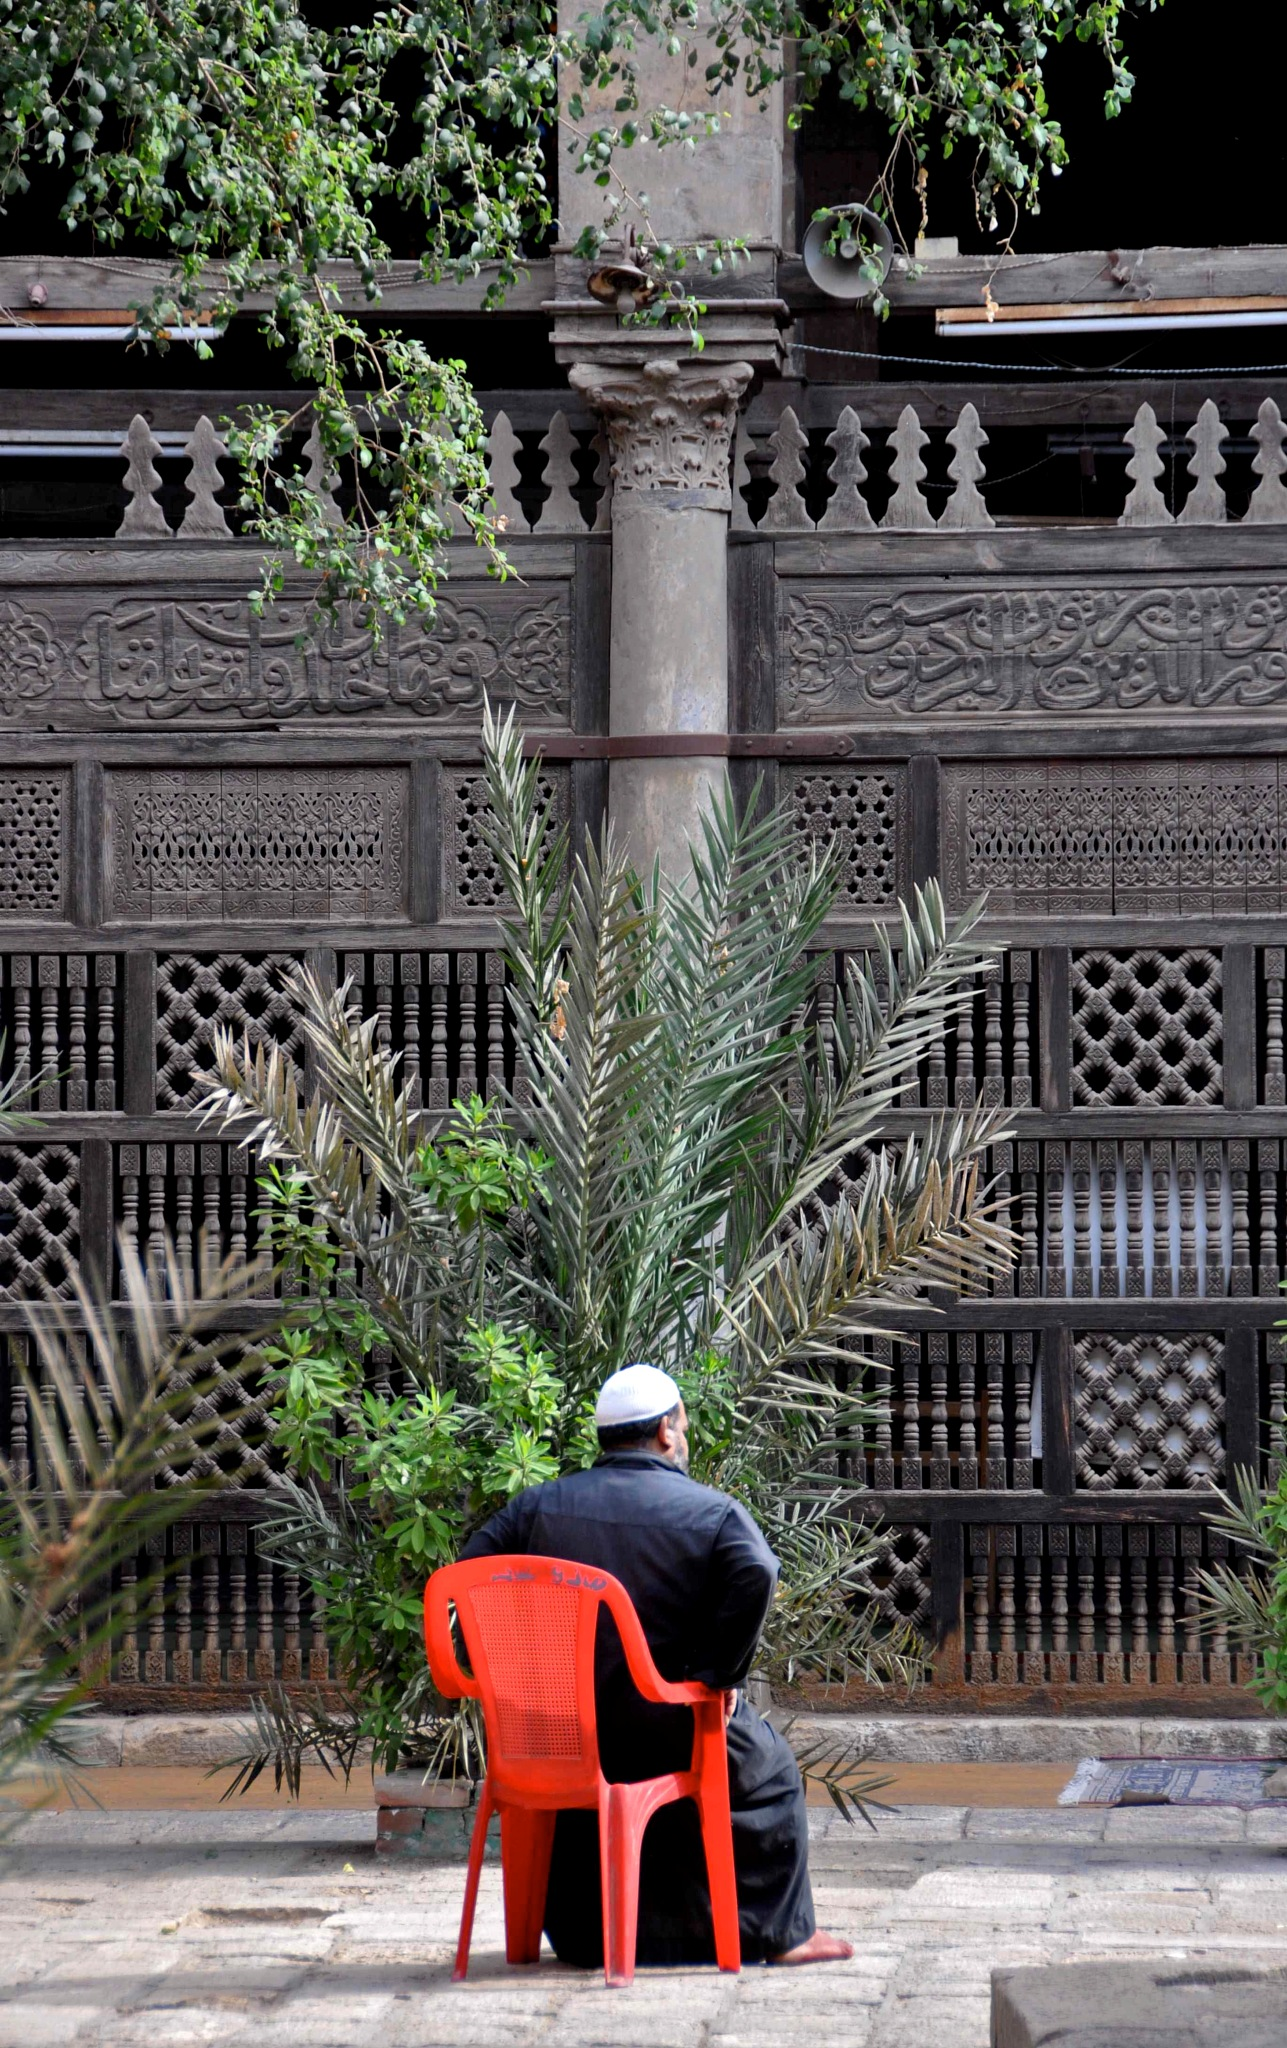 Mosque, Old Islamic Cairo by kfboland125